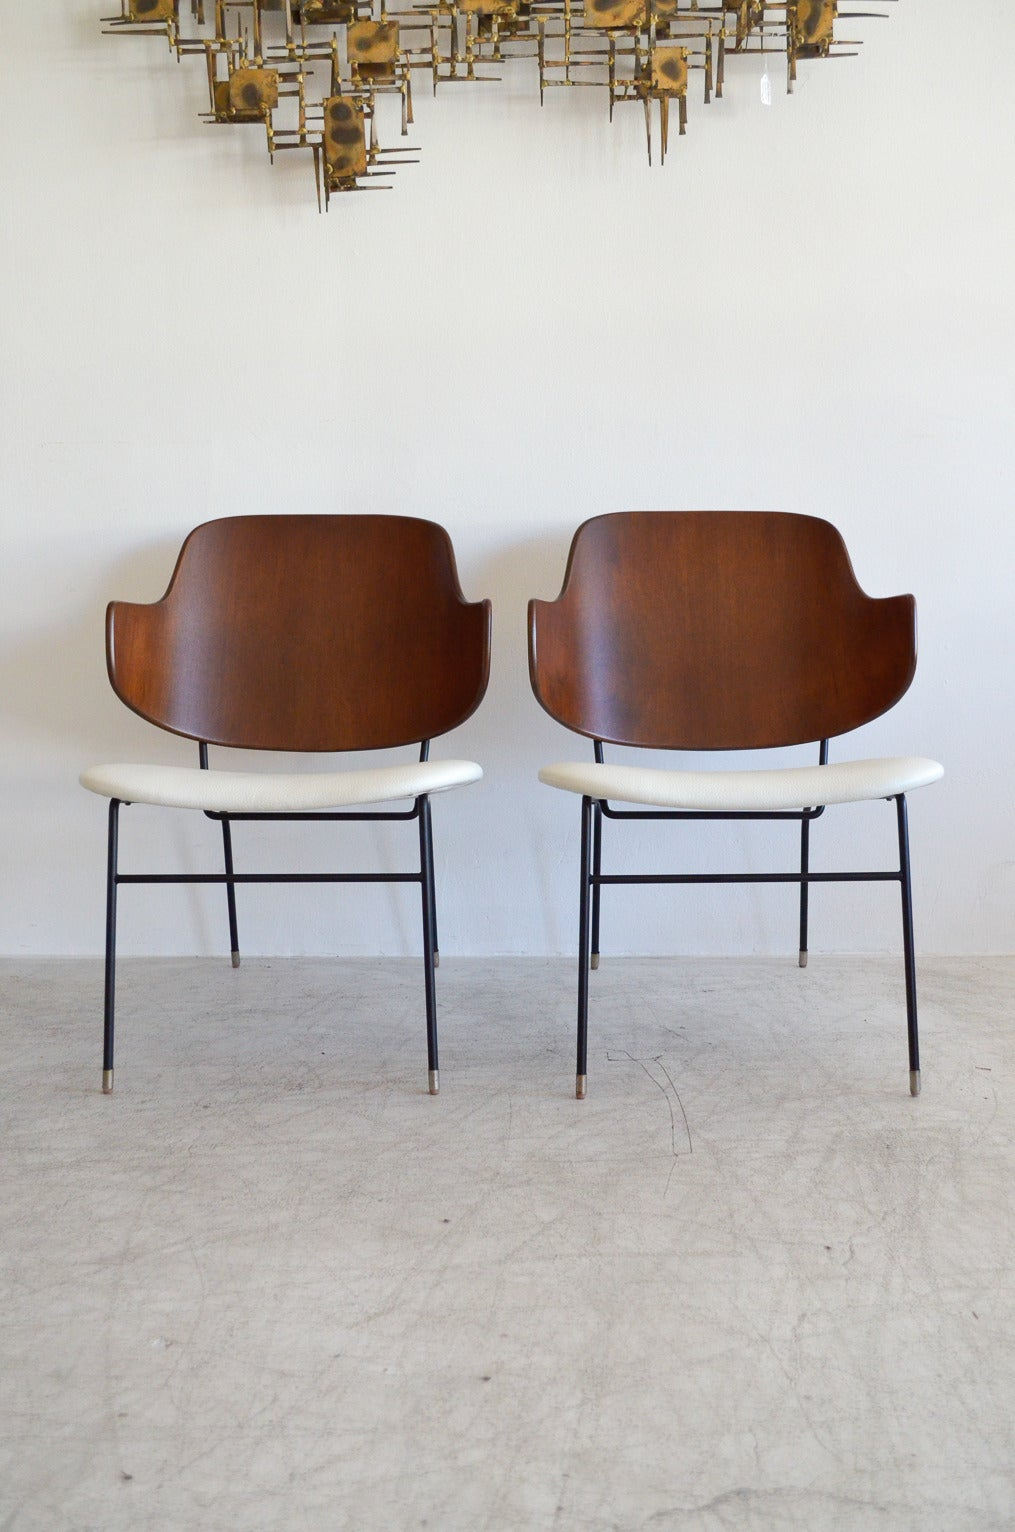 This sculptural pair of lounge chairs by ib kofod larsen is no longer - Rare Pair Of I B Kofod Larsen Penguin Lounge Chairs 3